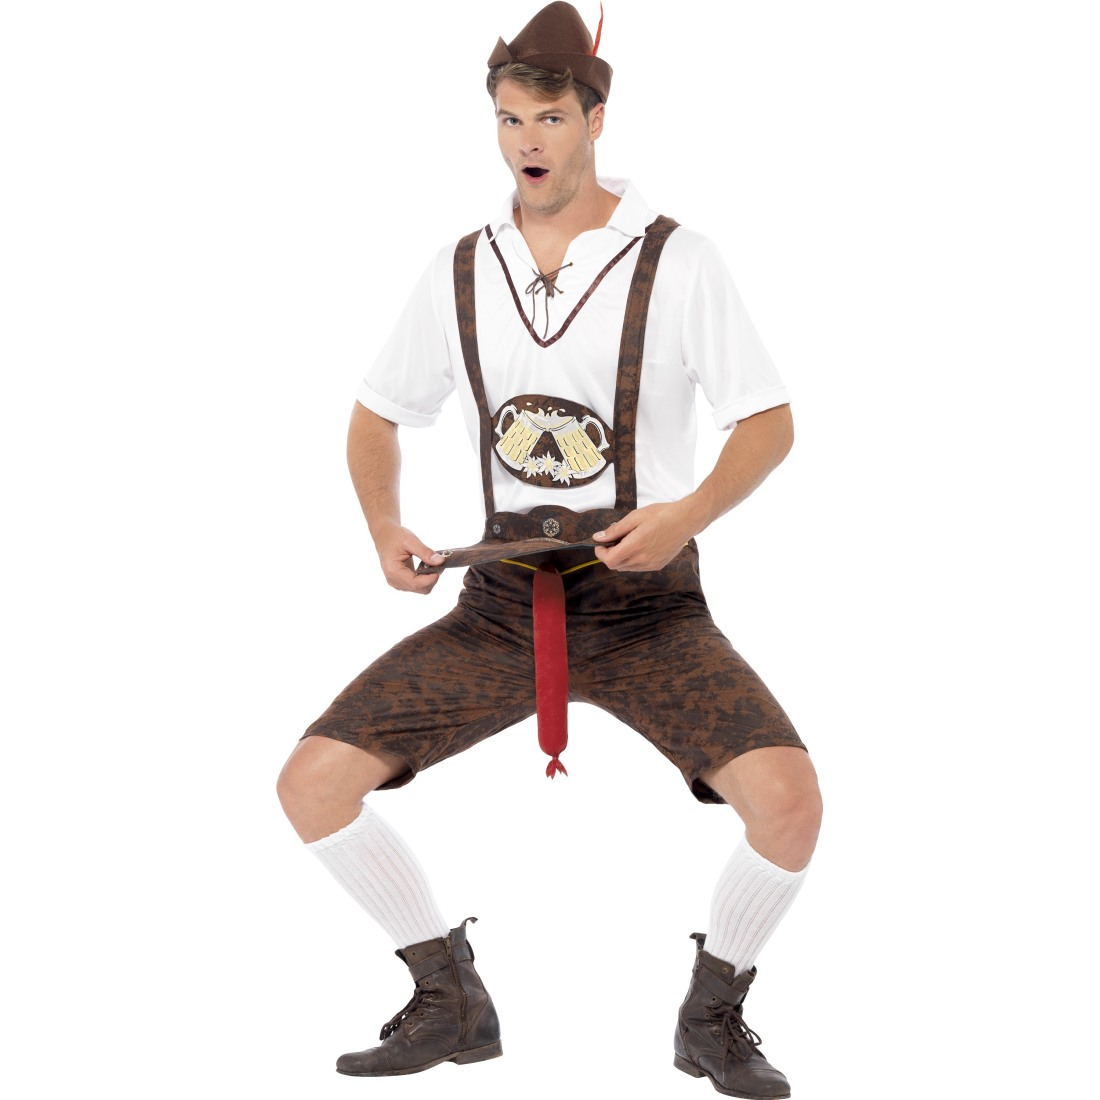 lustiges oktoberfest kost m lederhosen mit bratwurst trachtenkost m lederhose. Black Bedroom Furniture Sets. Home Design Ideas